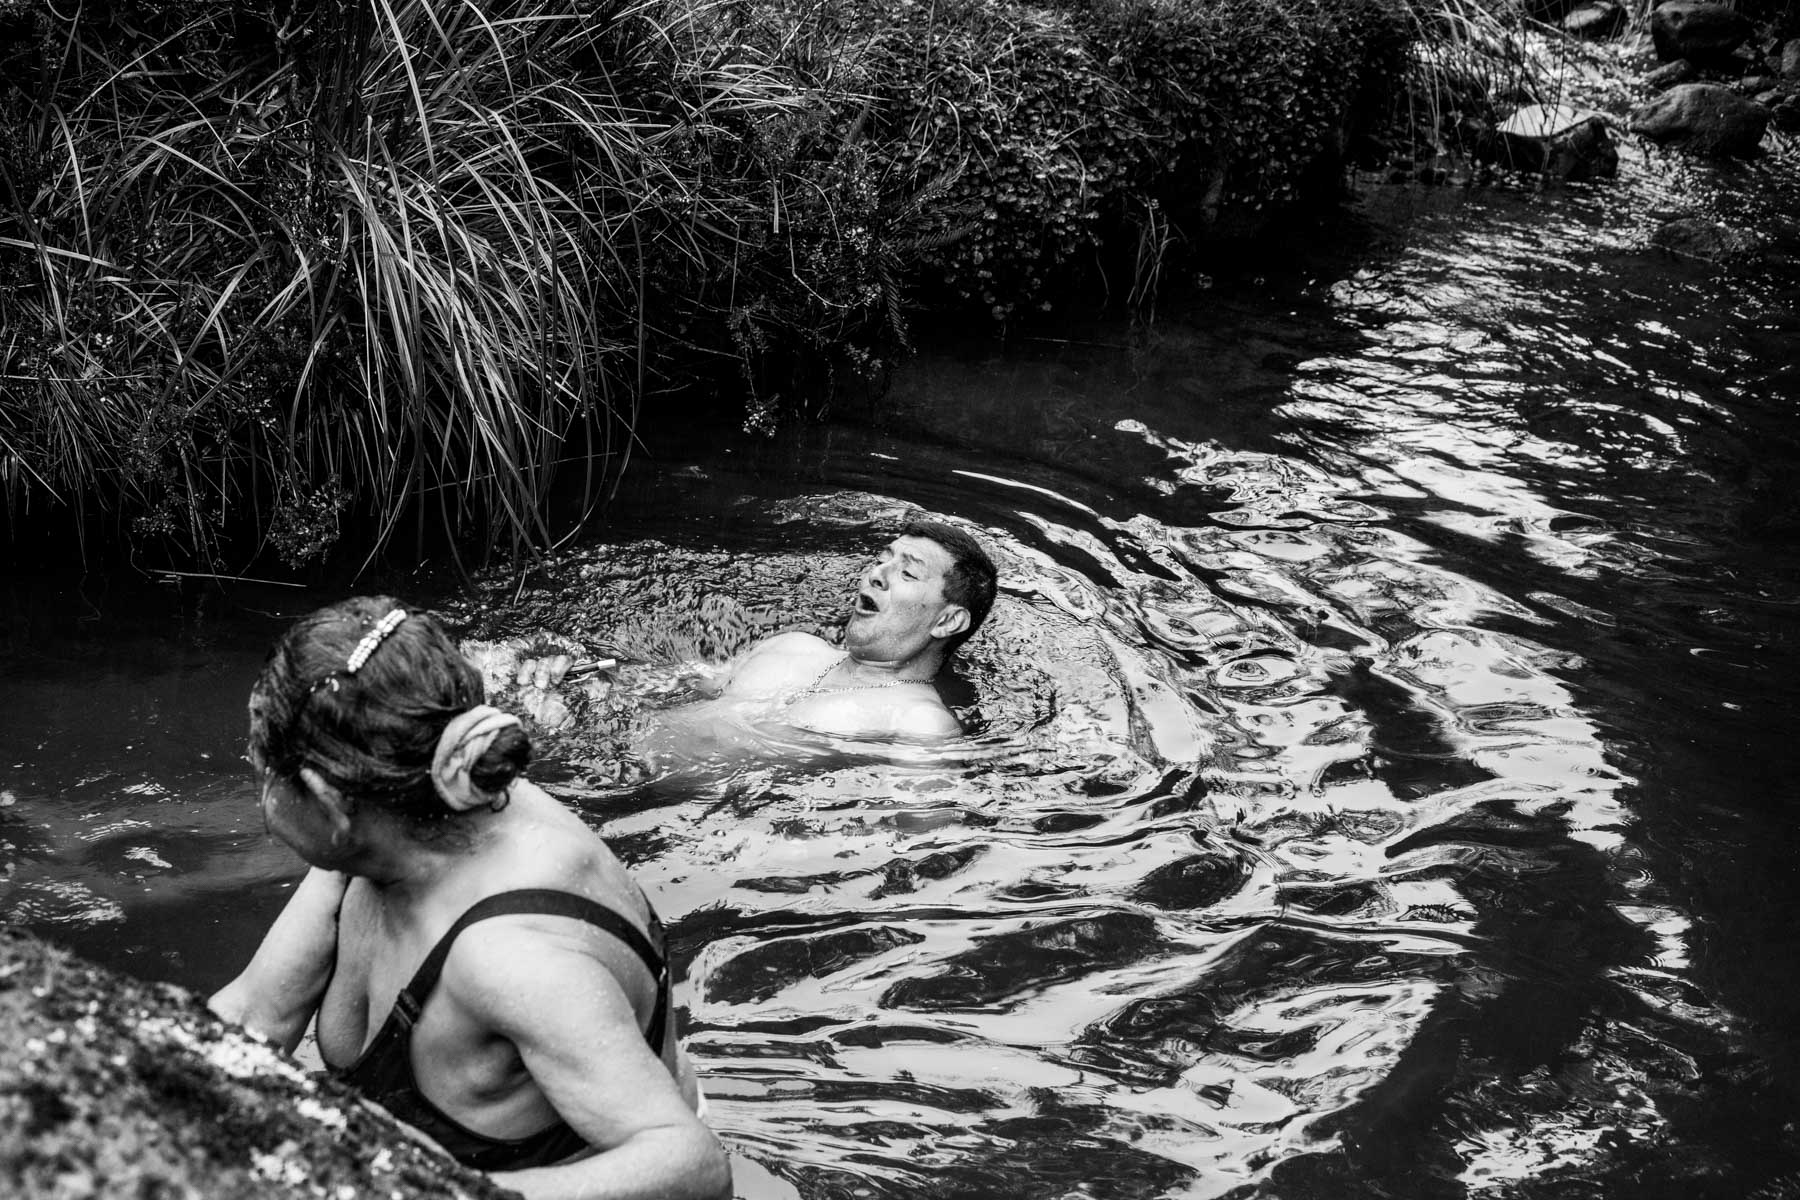 "Members of the Nasa indigenous community wash themselves in the icy waters of the Páramo de Pisnos as part of the cleansing ritual of the 'Khabu fxizehnxi' ('Refreshing of the Batons""), one of the five main rituals of the Nasa indigenous people of the Cauca region in Colombia. Cauca region, Colombia, January 2019."